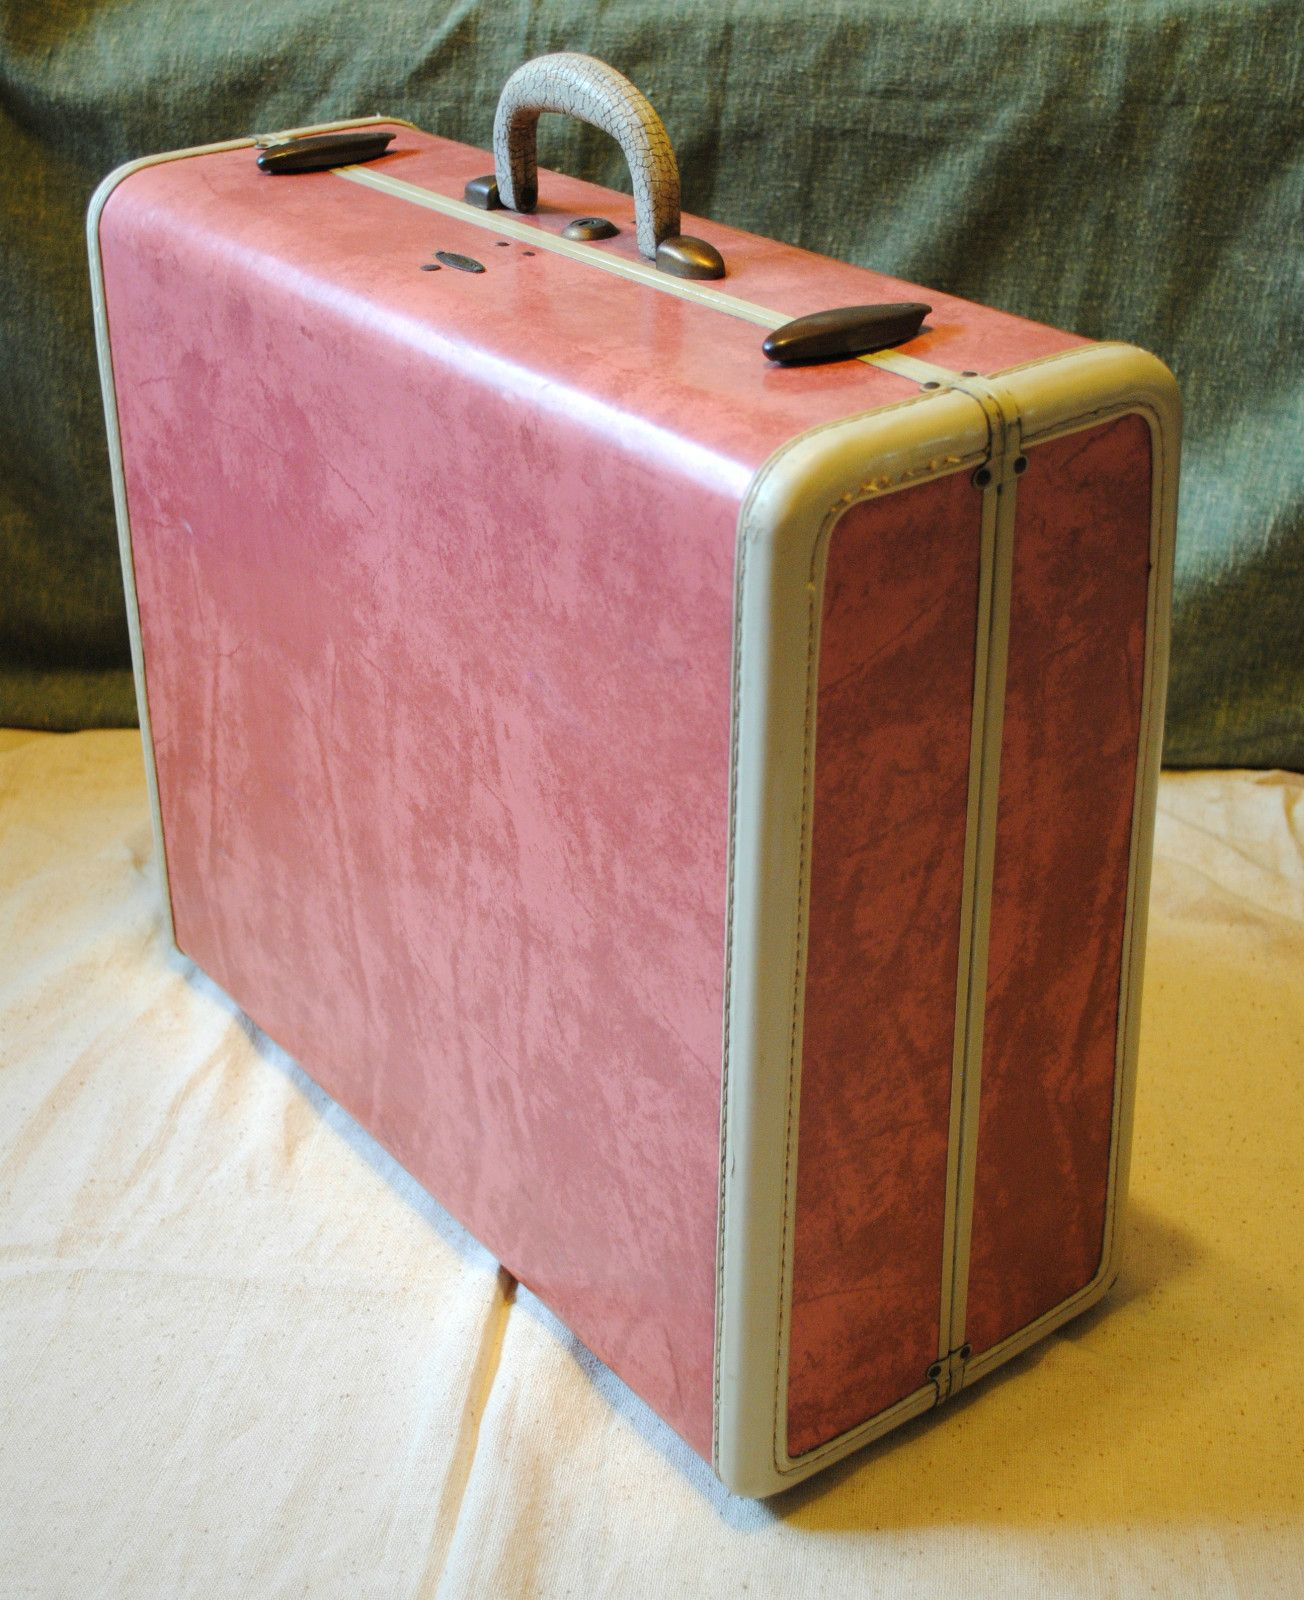 Vintage Luggage Samsonite Early 1950s Shwayder Bros. Rose Pink ...